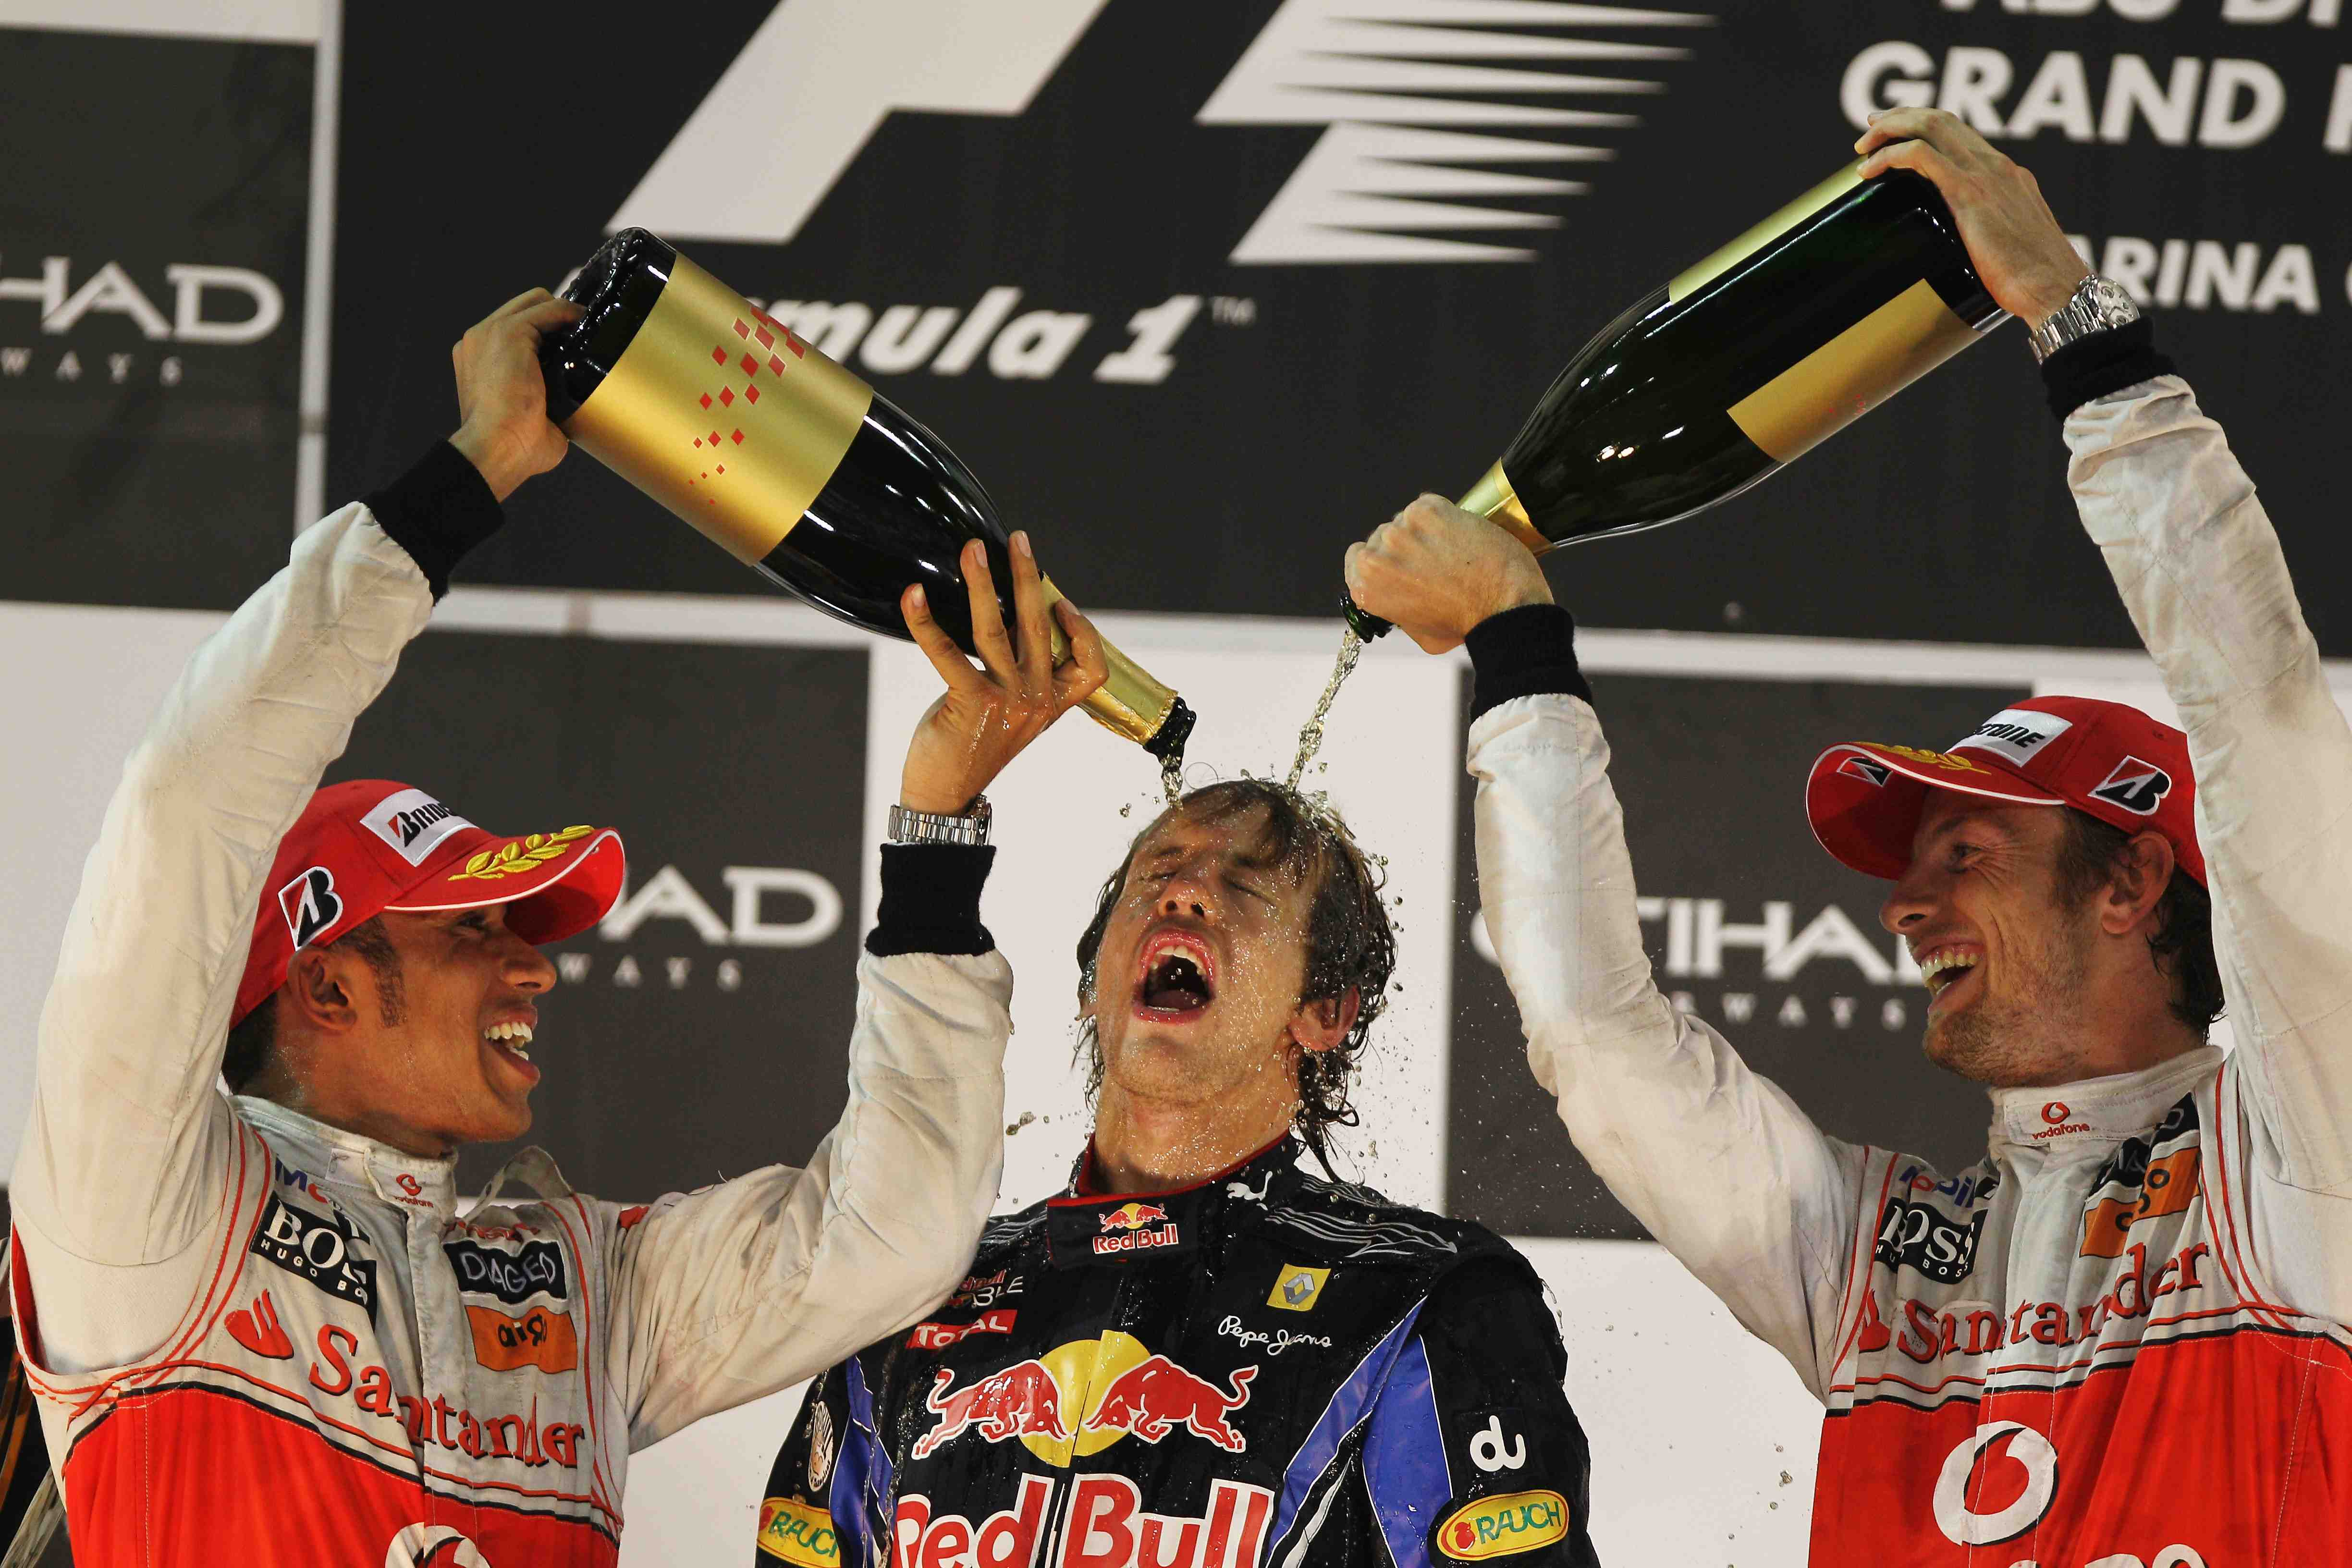 Vettel and Red Bull favourites for 2011